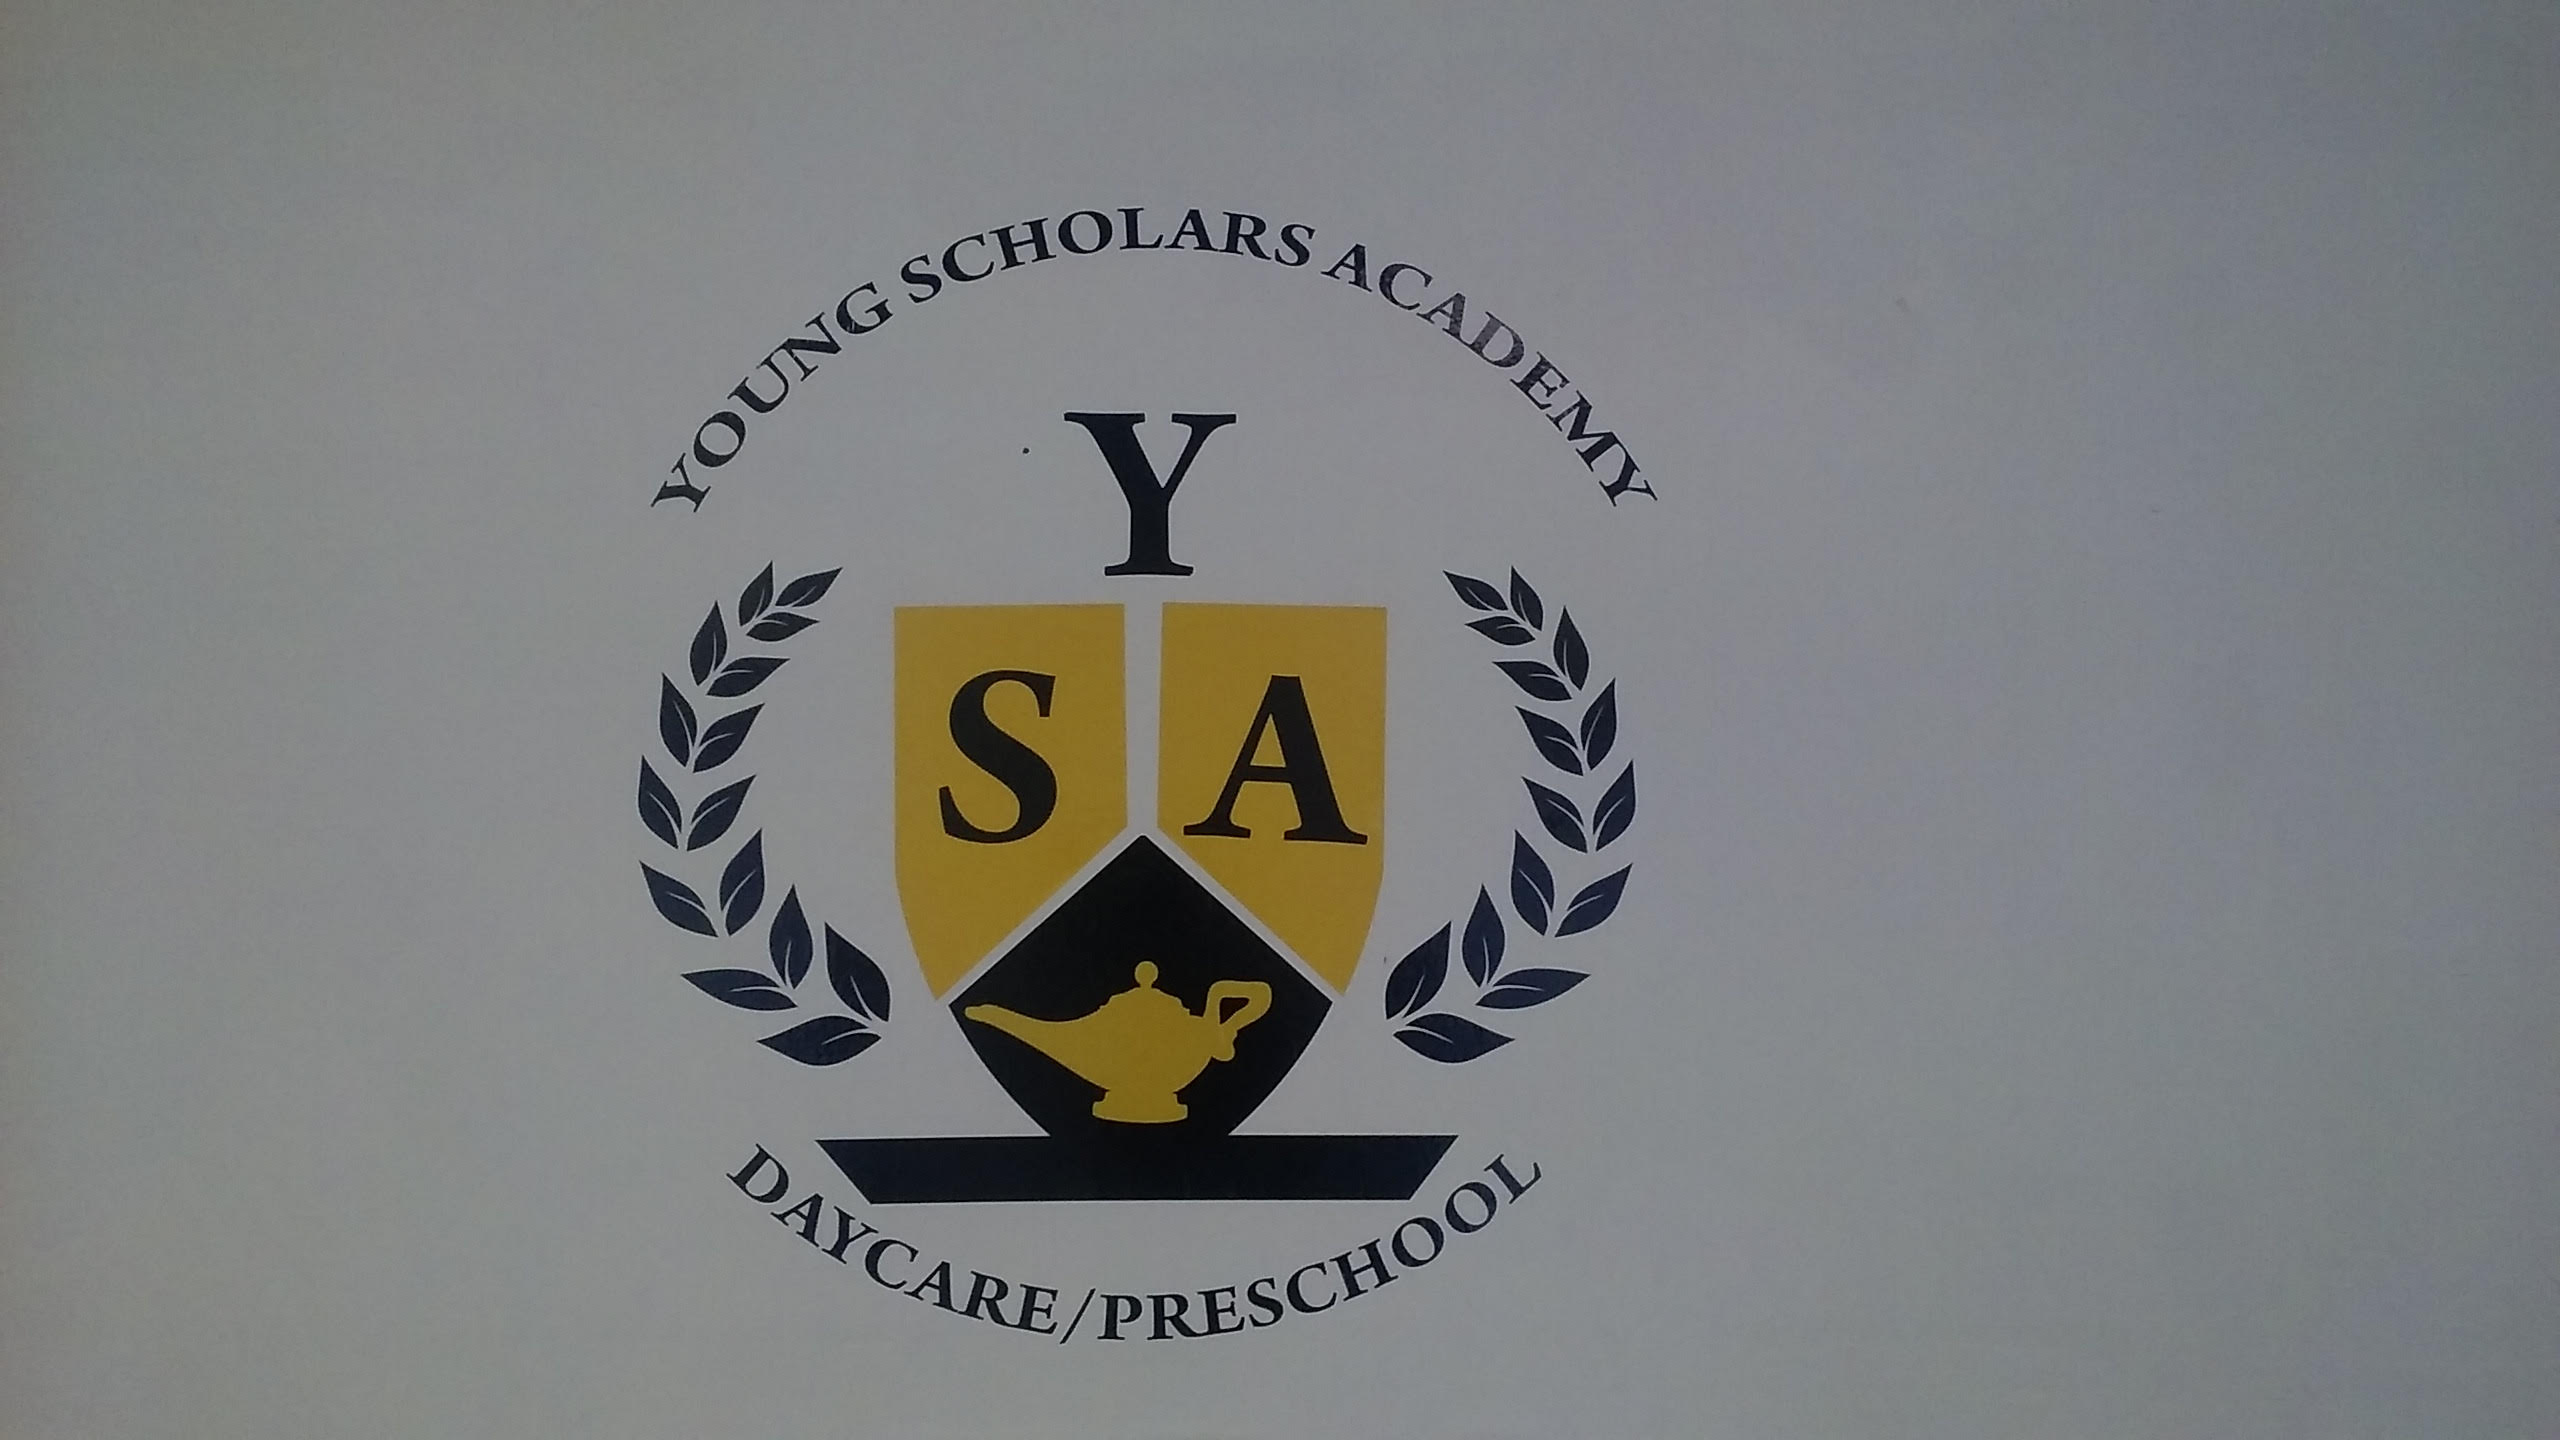 Young Scholars Academy LLC